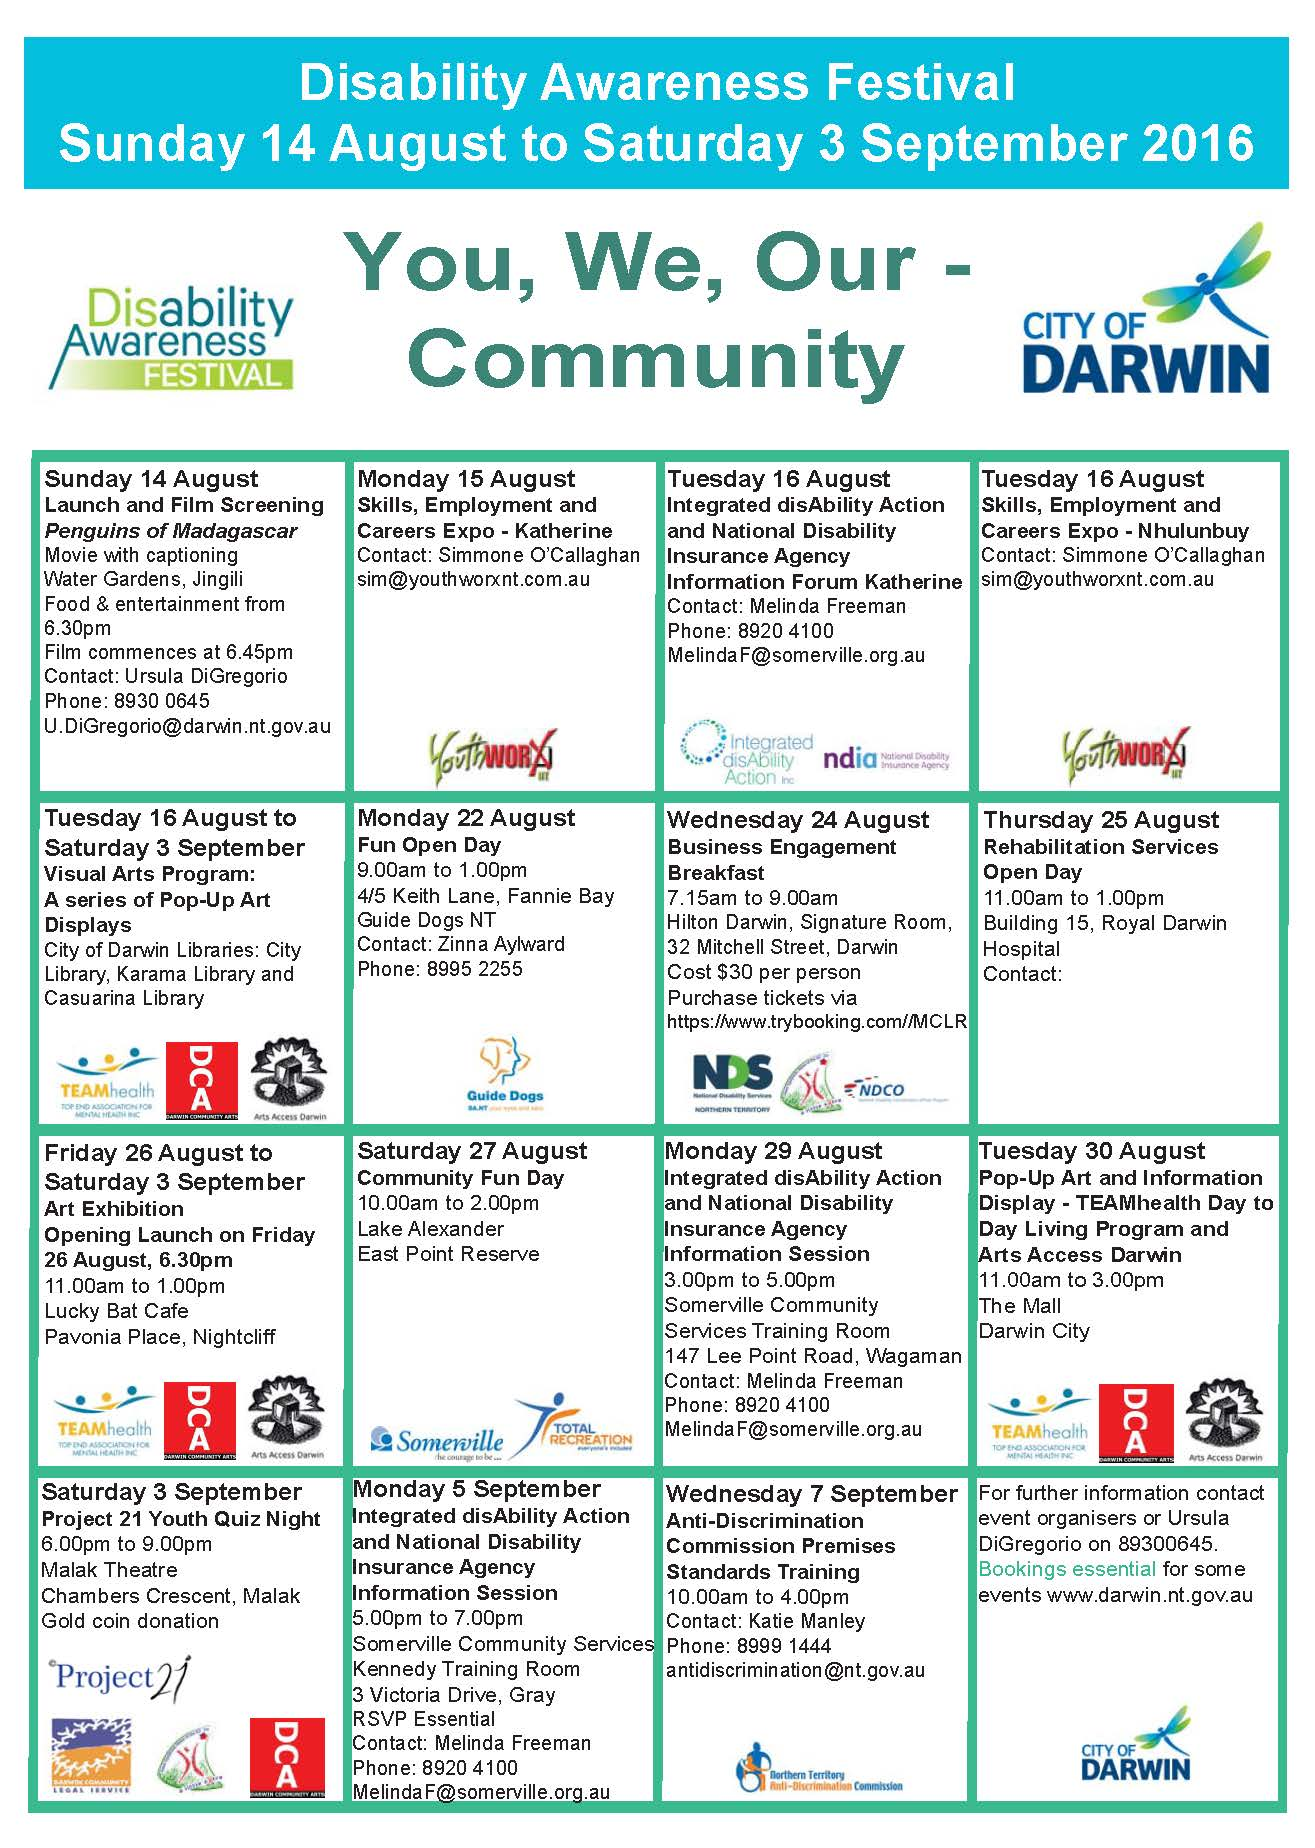 2016 Disability Awareness Festival City of Darwin